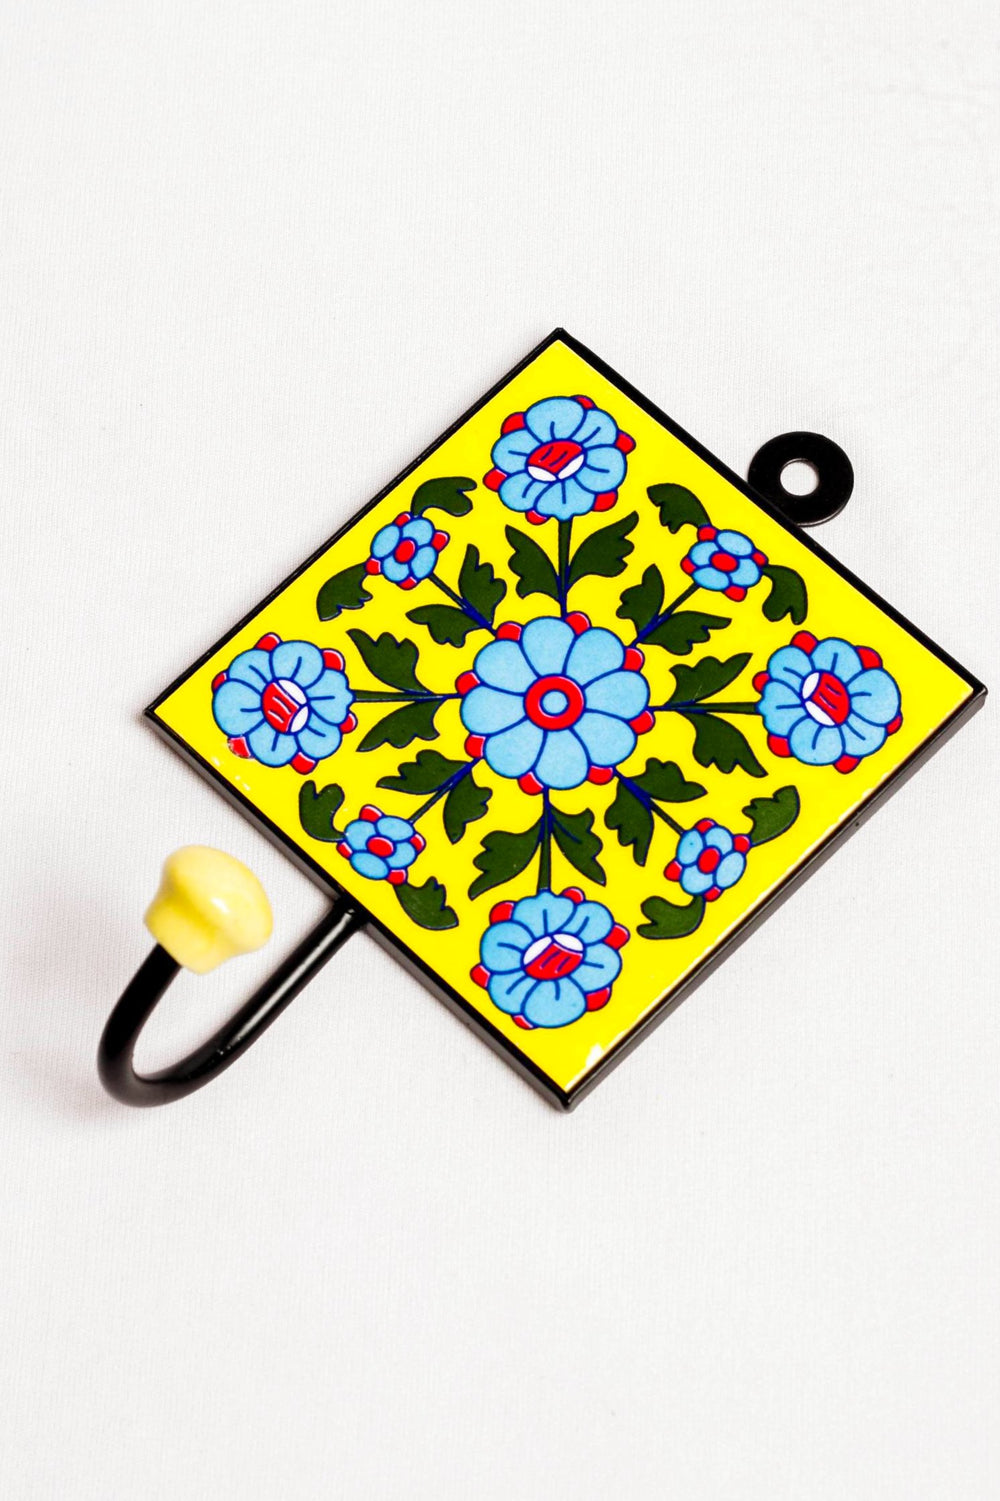 Metal and single ceramic tile with a peg wall hook, yellow with blue and red motif